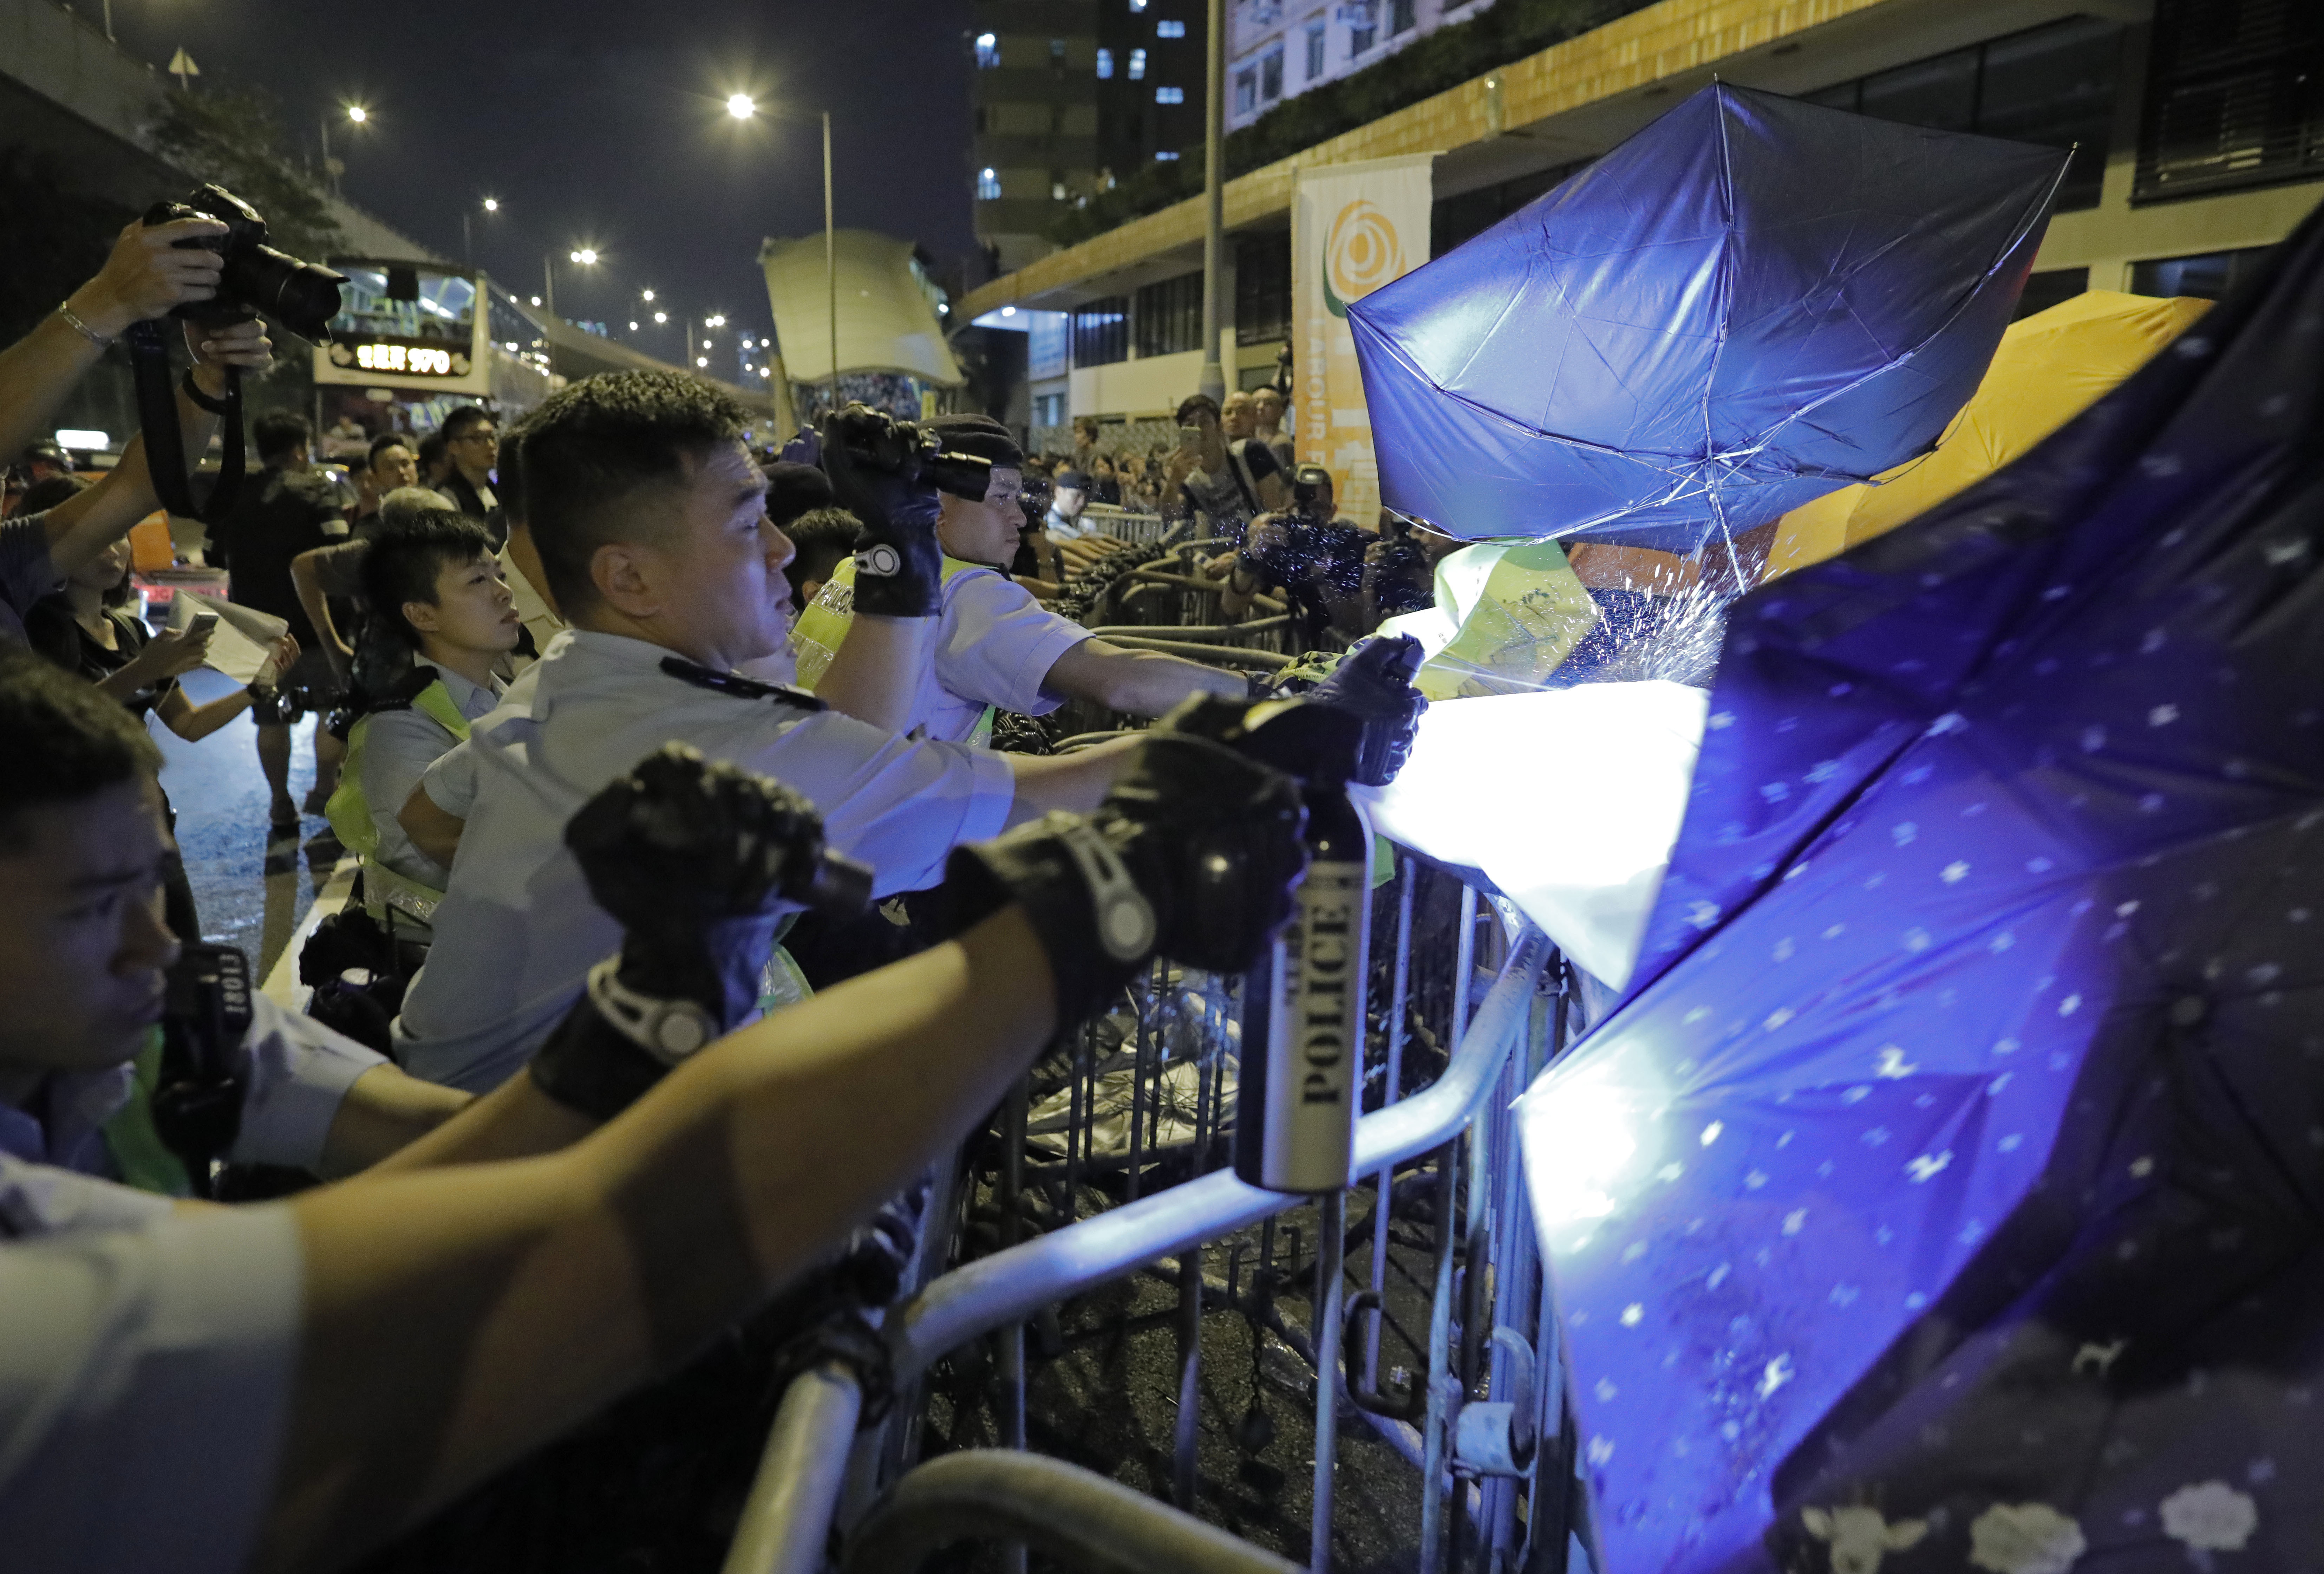 Protesters use umbrellas to block the pepper spray from police officers after clashing outside the Chinese central government's liaison office as thousands of people march in a Hong Kong down town street, Sunday, Nov. 6, 2016, to protest China's top legislative panel has said Beijing must intervene in a Hong Kong political dispute to deter advocates of independence for the city, calling such acts a threat to national security. (AP Photo/Vincent Yu)